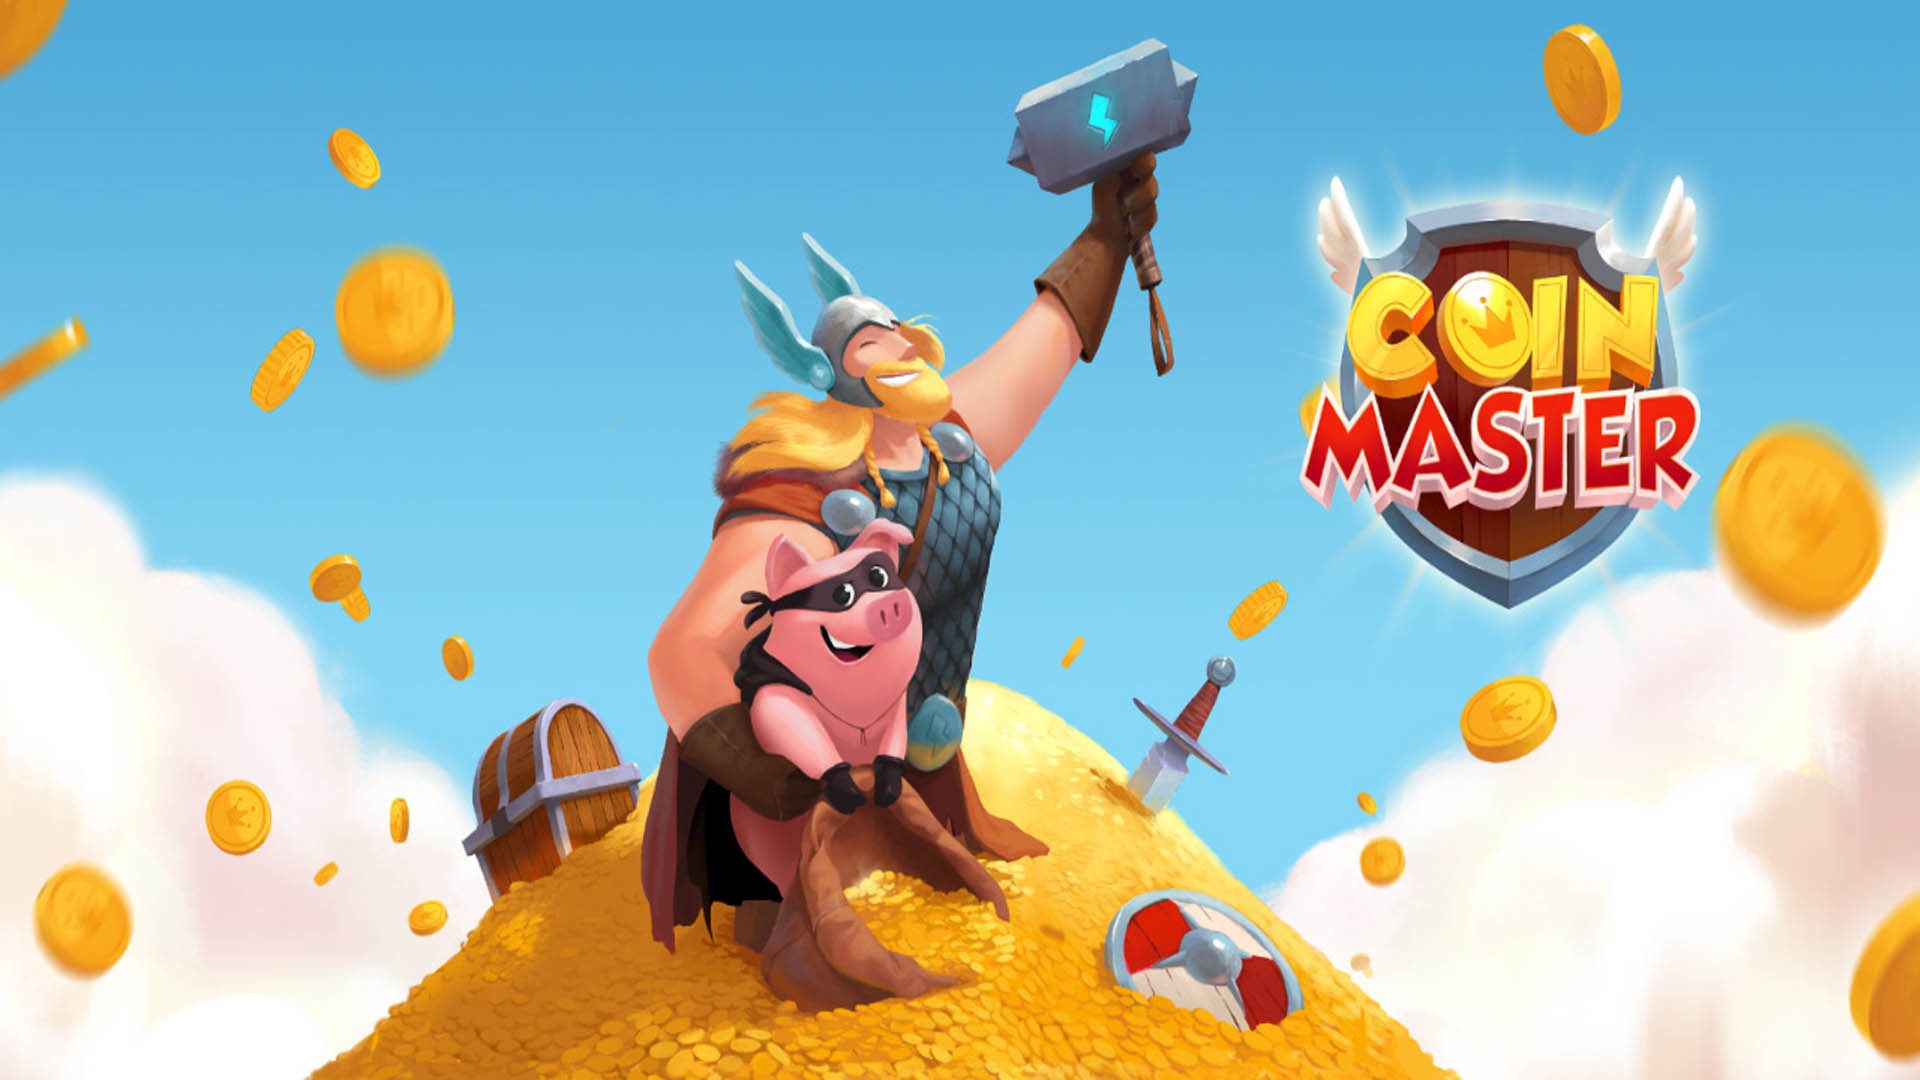 Coin Master Feature Image